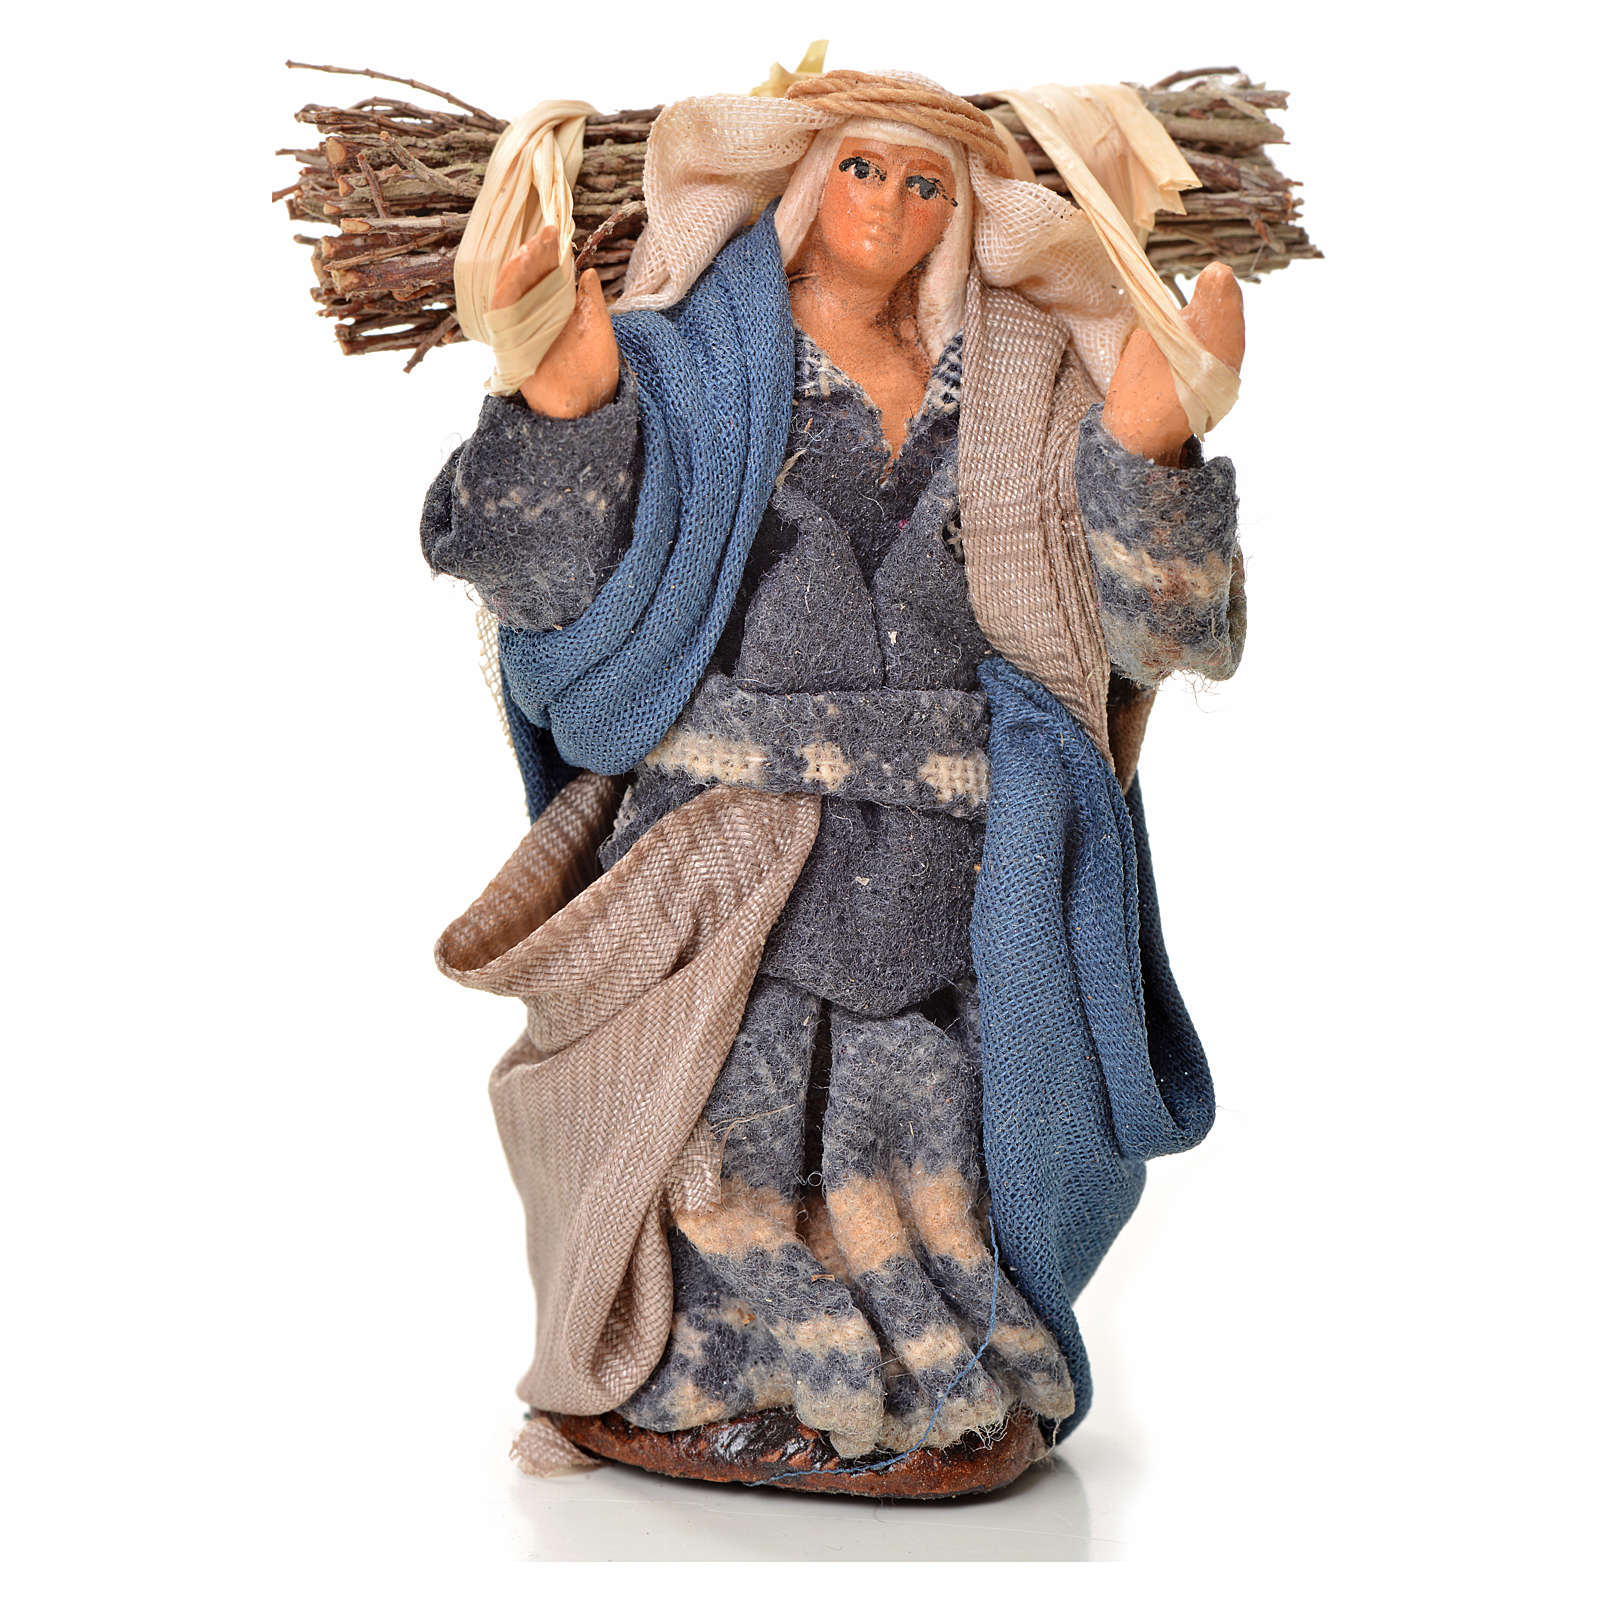 Neapolitan Nativity figurine, woman with bundle, 6 cm 4